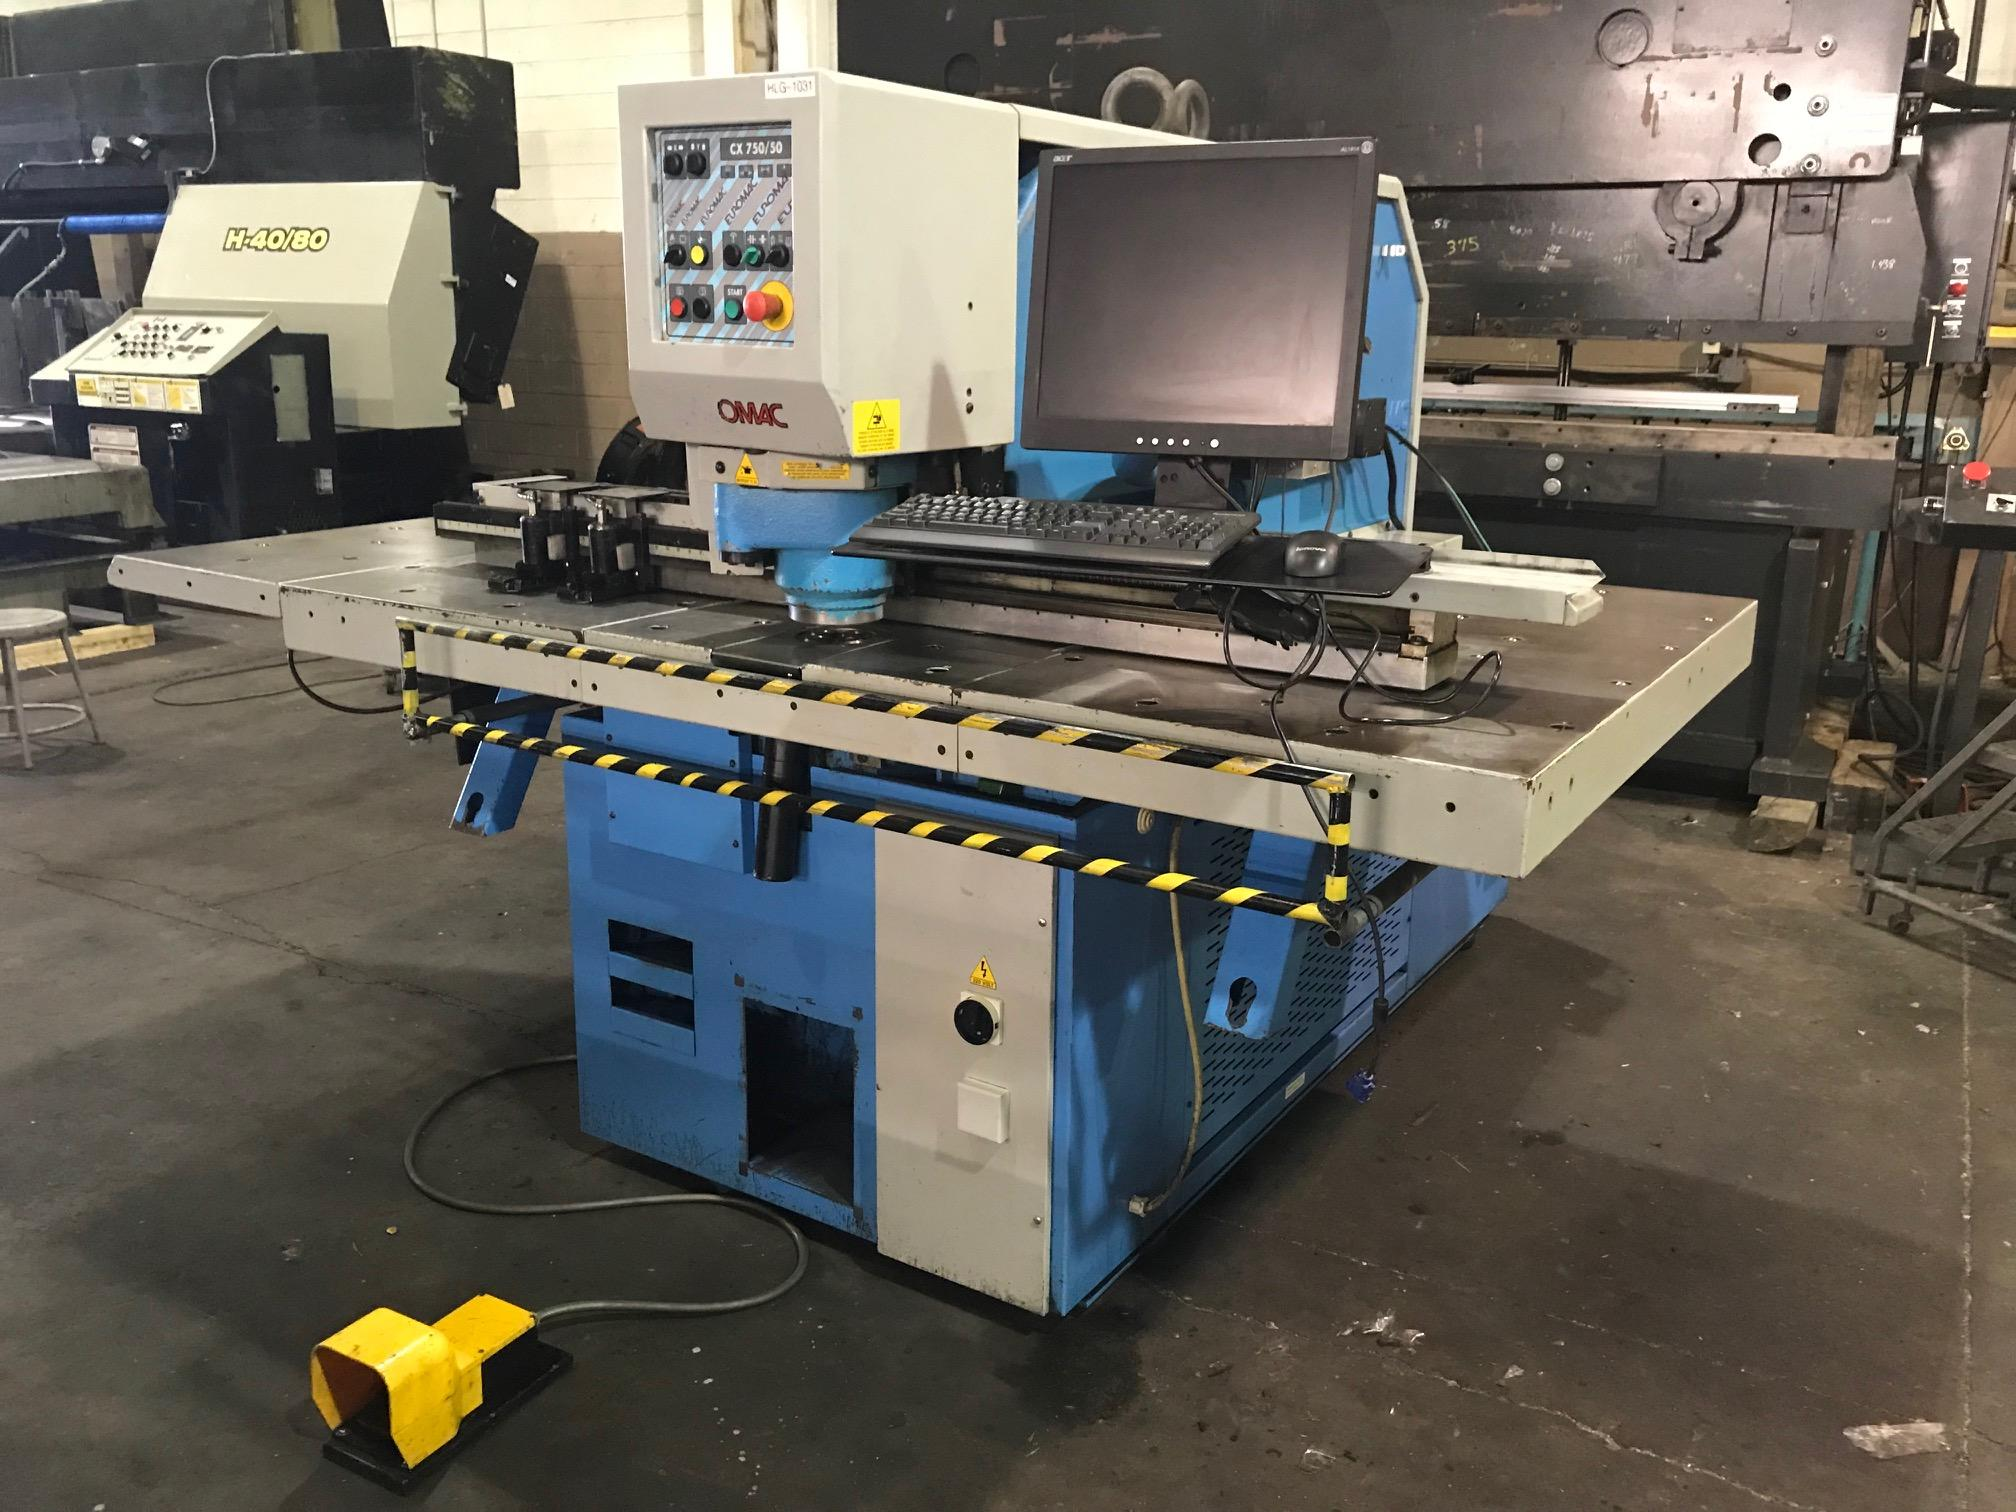 USED EUROMAC HYDRAULIC CNC PUNCHING MACHINE, Model CX 750/50-1250, 55 Tons, Stock No. 10607, Year 2000